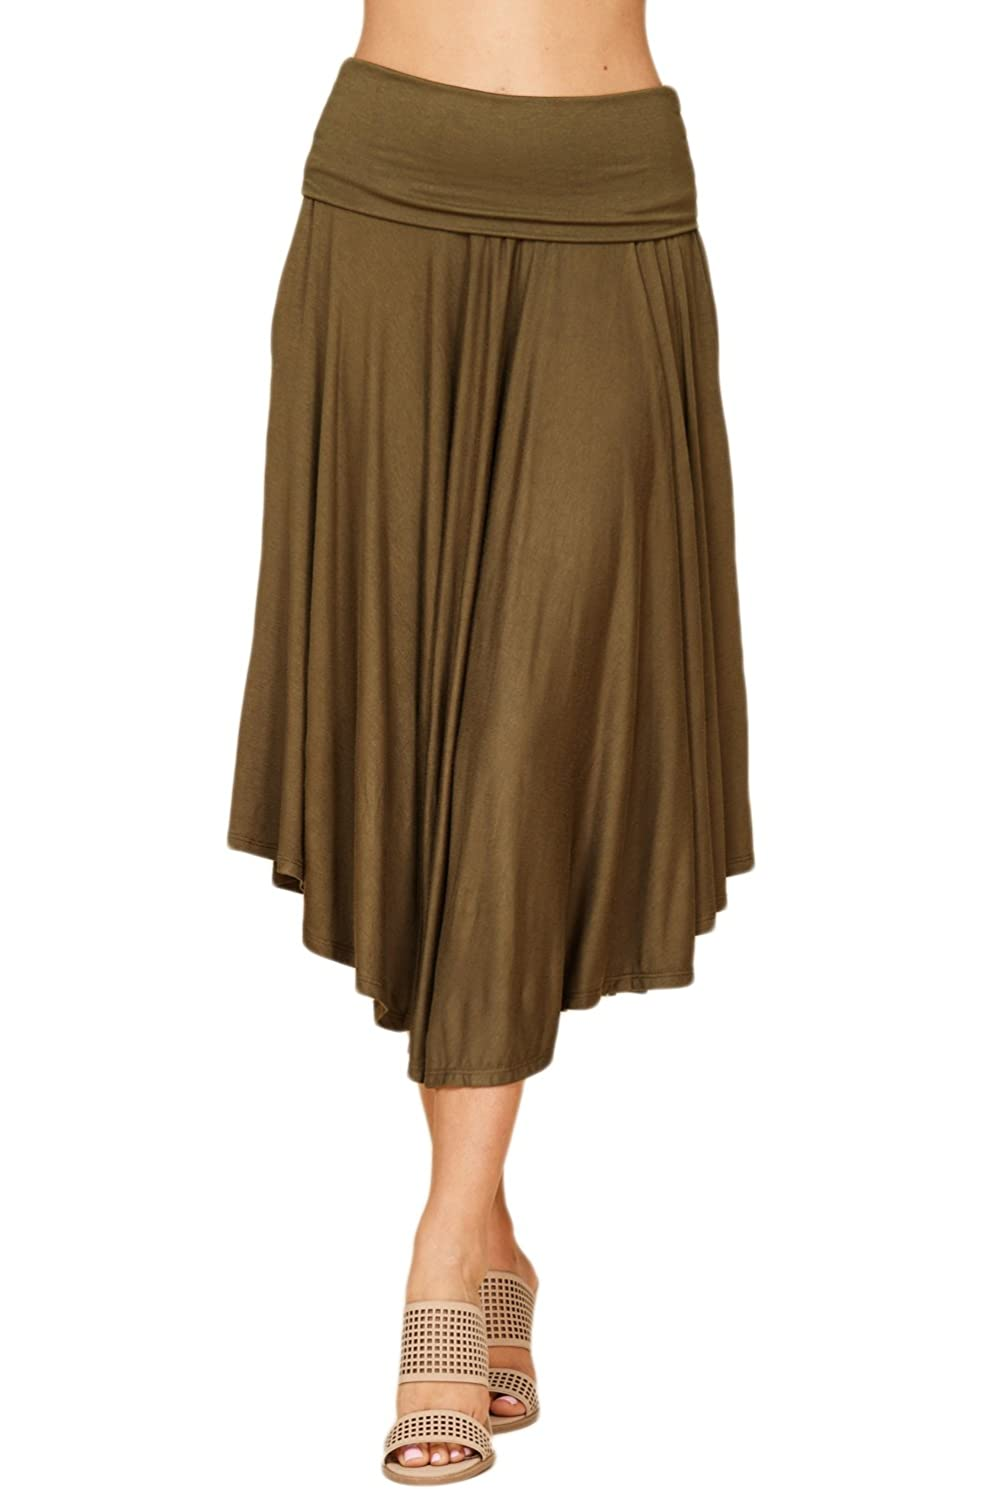 Womens Fold Over Waistband Comfy A Line Flowly Midi Skirts with Side Pockets